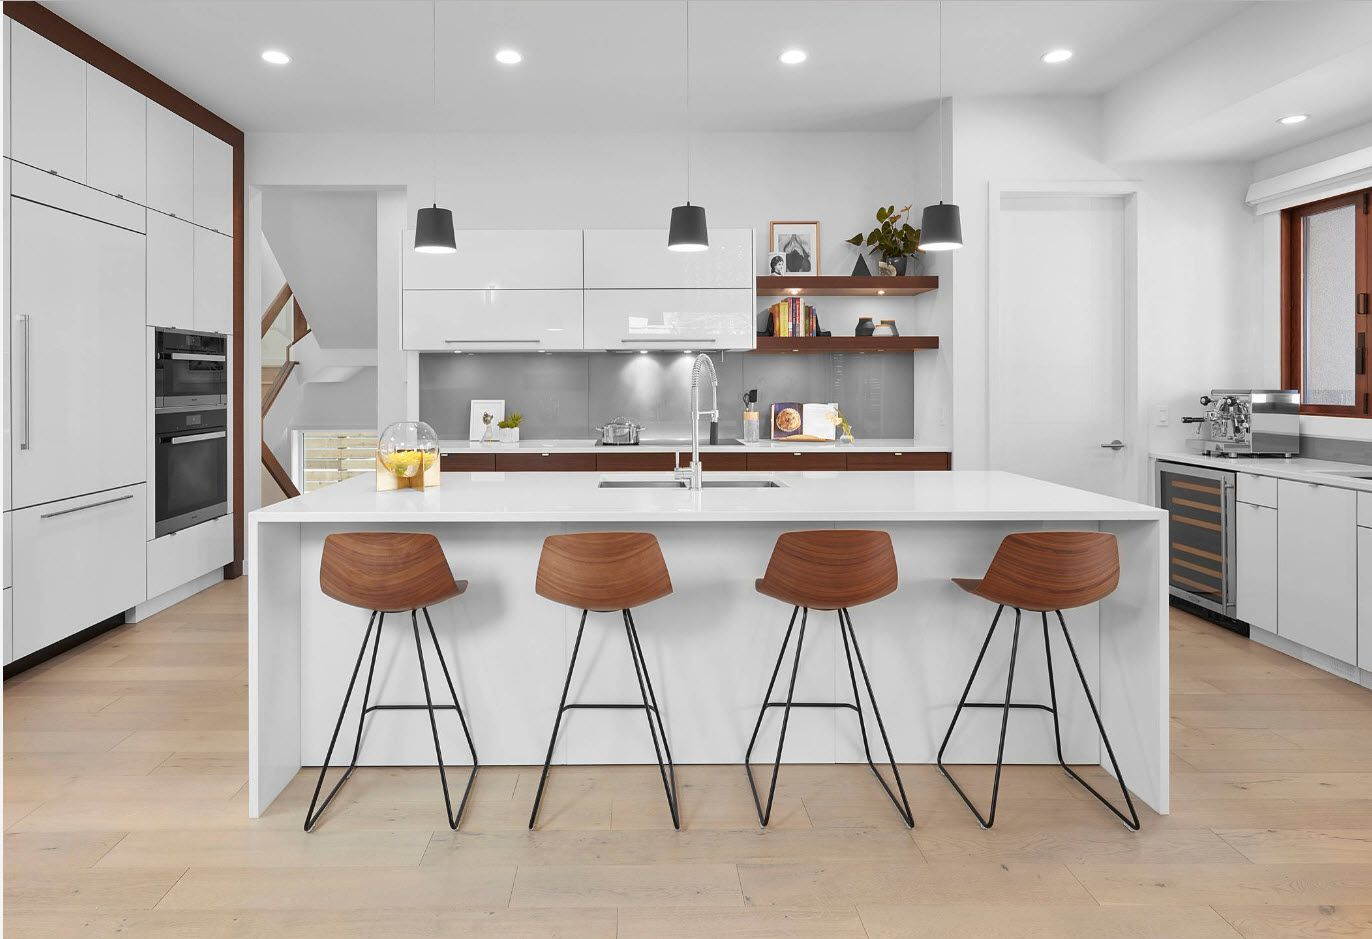 Four chairs of wood in white kitchen